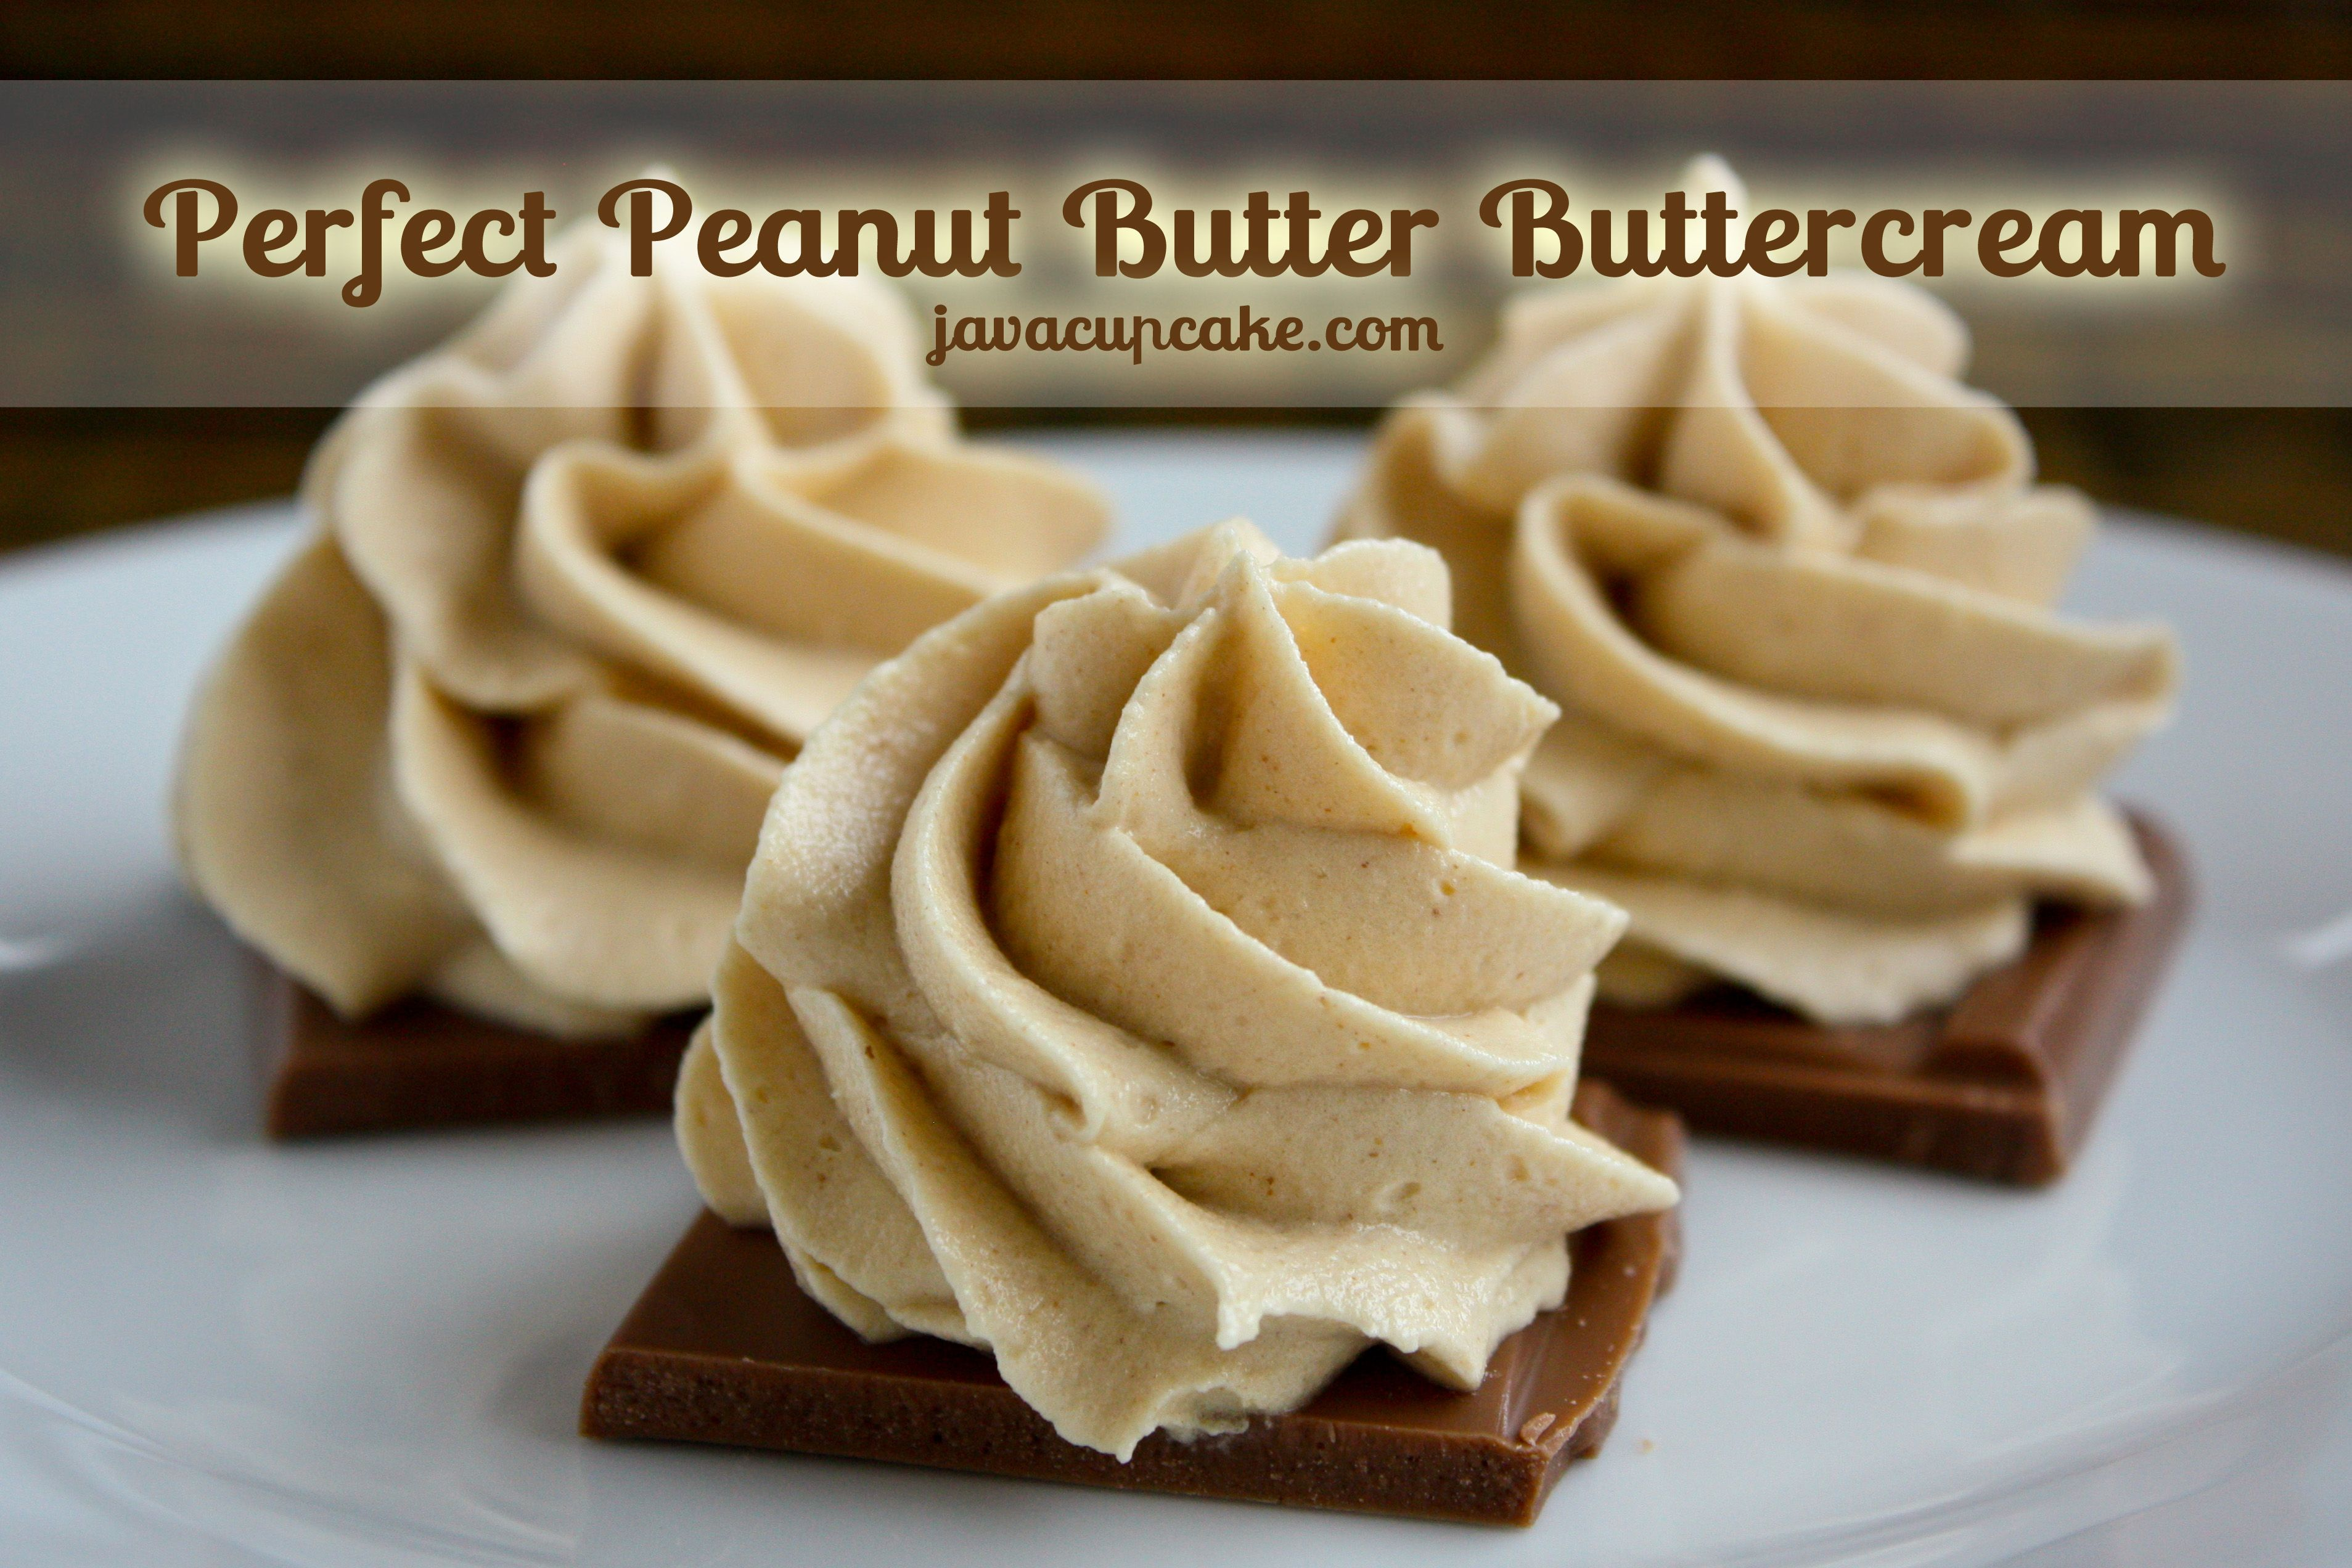 peanut butter buttercream frosting recipe for cupcakes